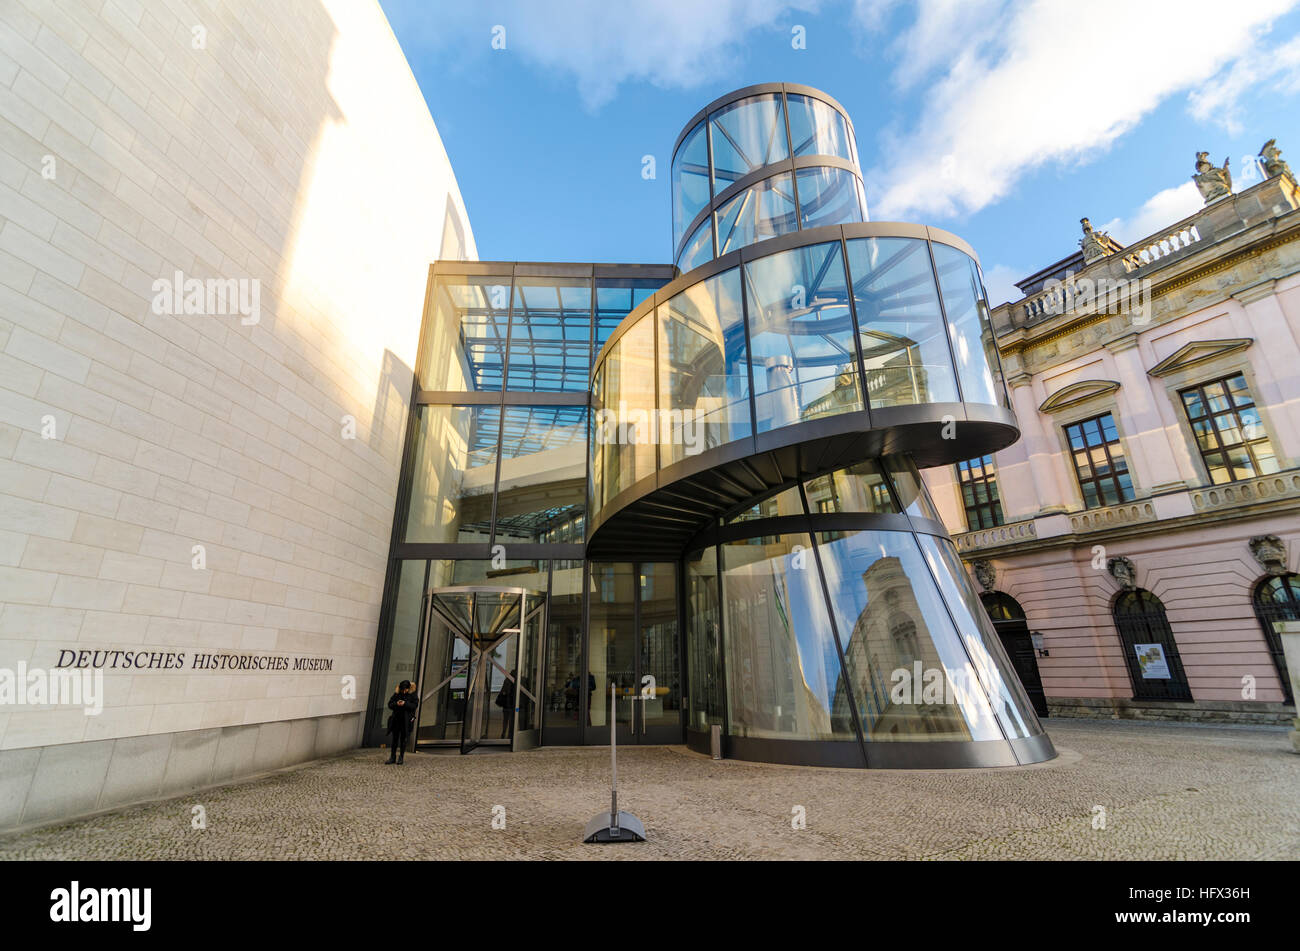 Deutsches Historisches Museum extension by Chinese American architect I. M. Pei, German Historical Museum, DHM, - Stock Image